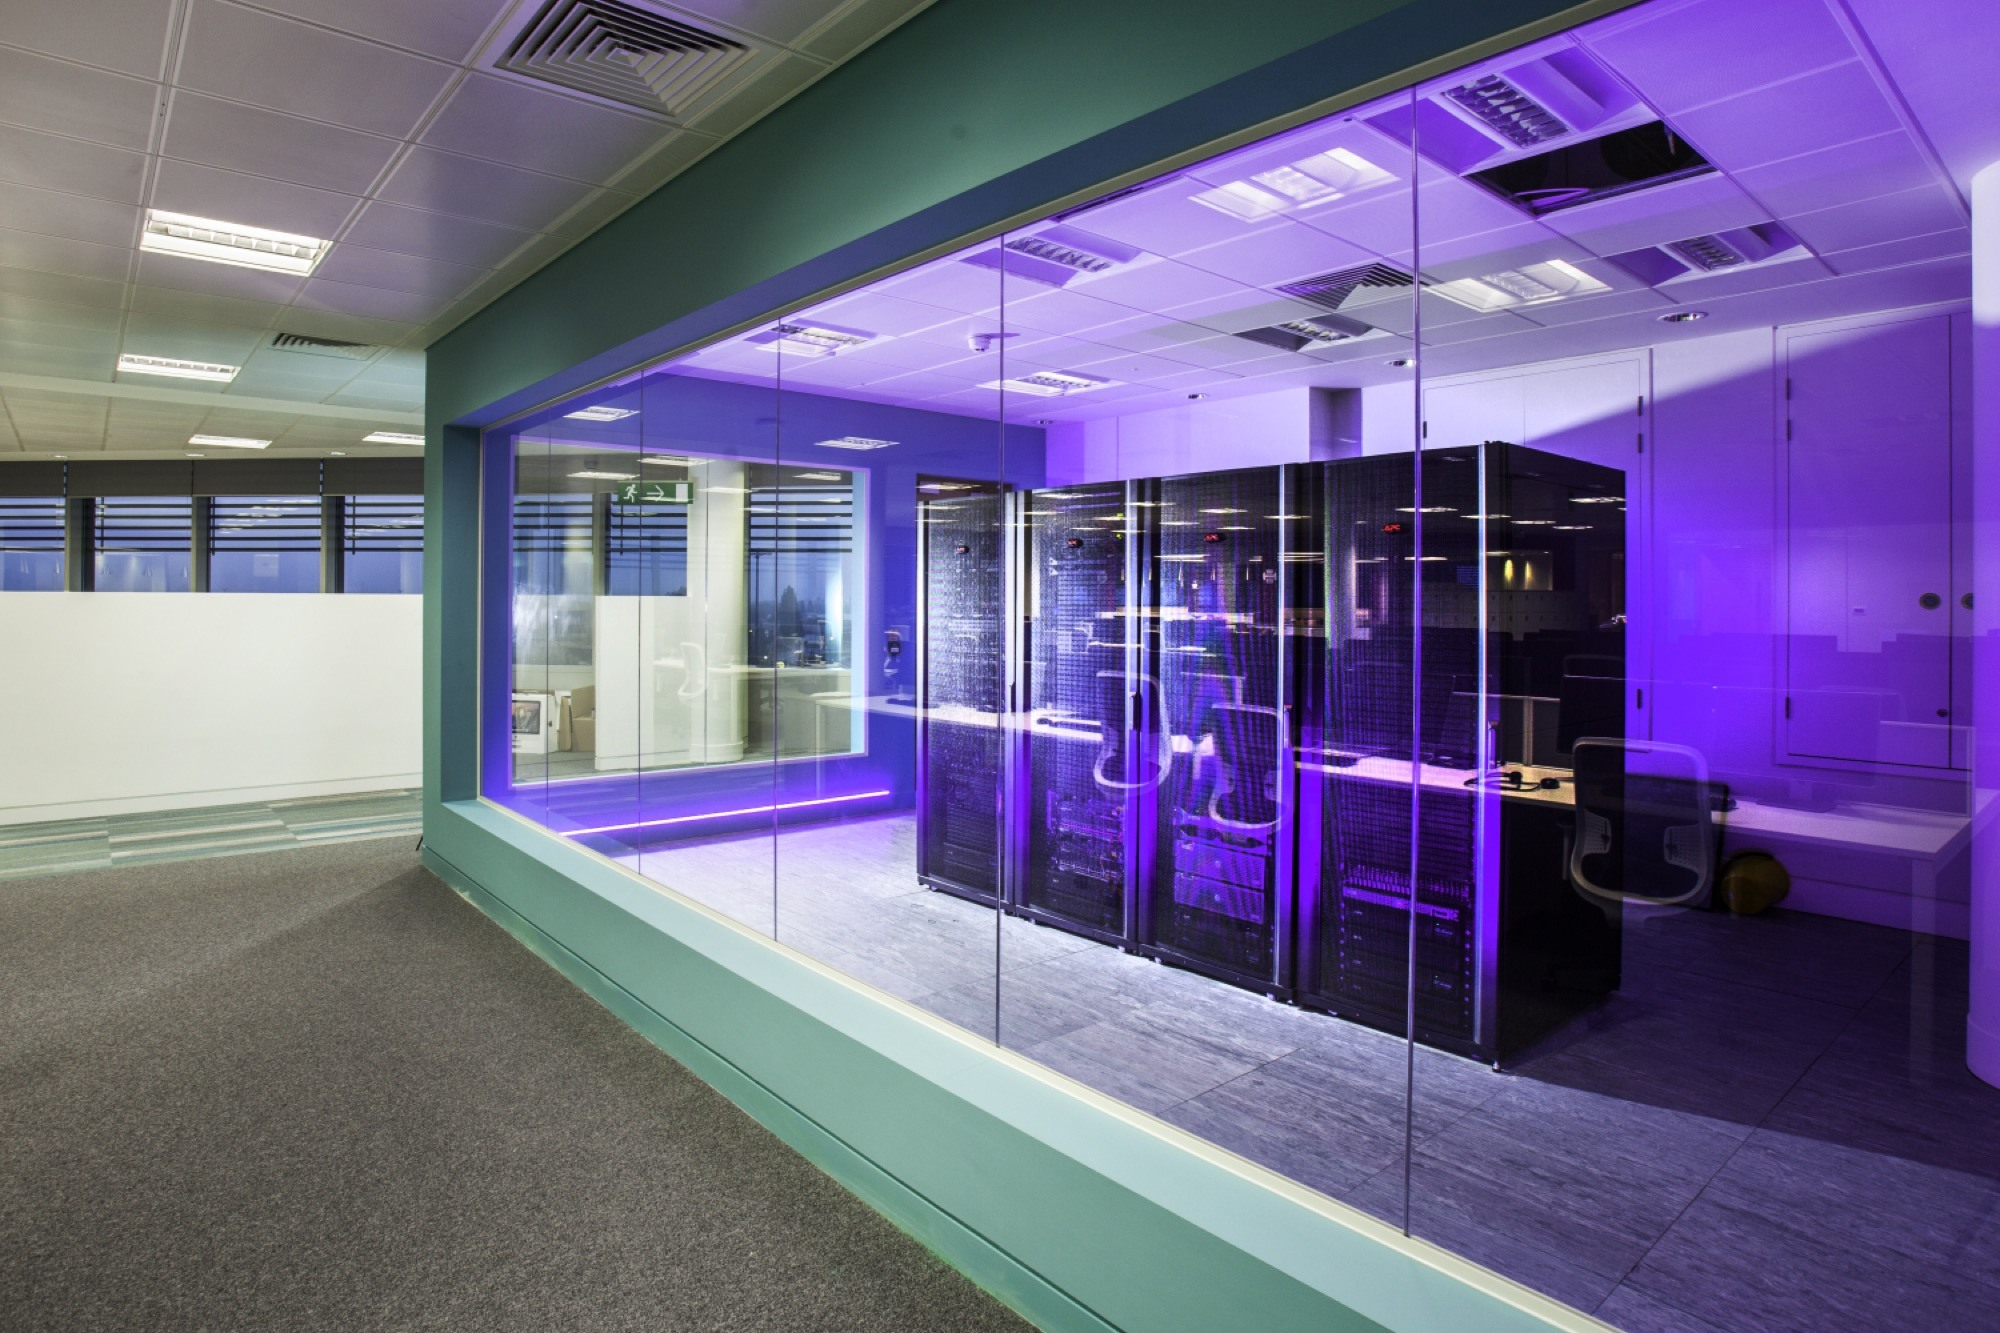 Travel Counsellors server room with coloured glass